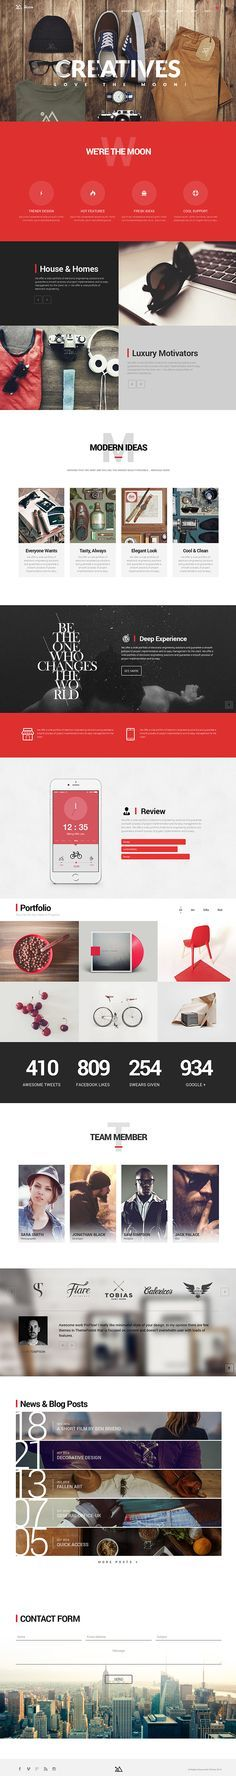 The Moon - Creative One Page Multi-Purpose Theme on Behance <3